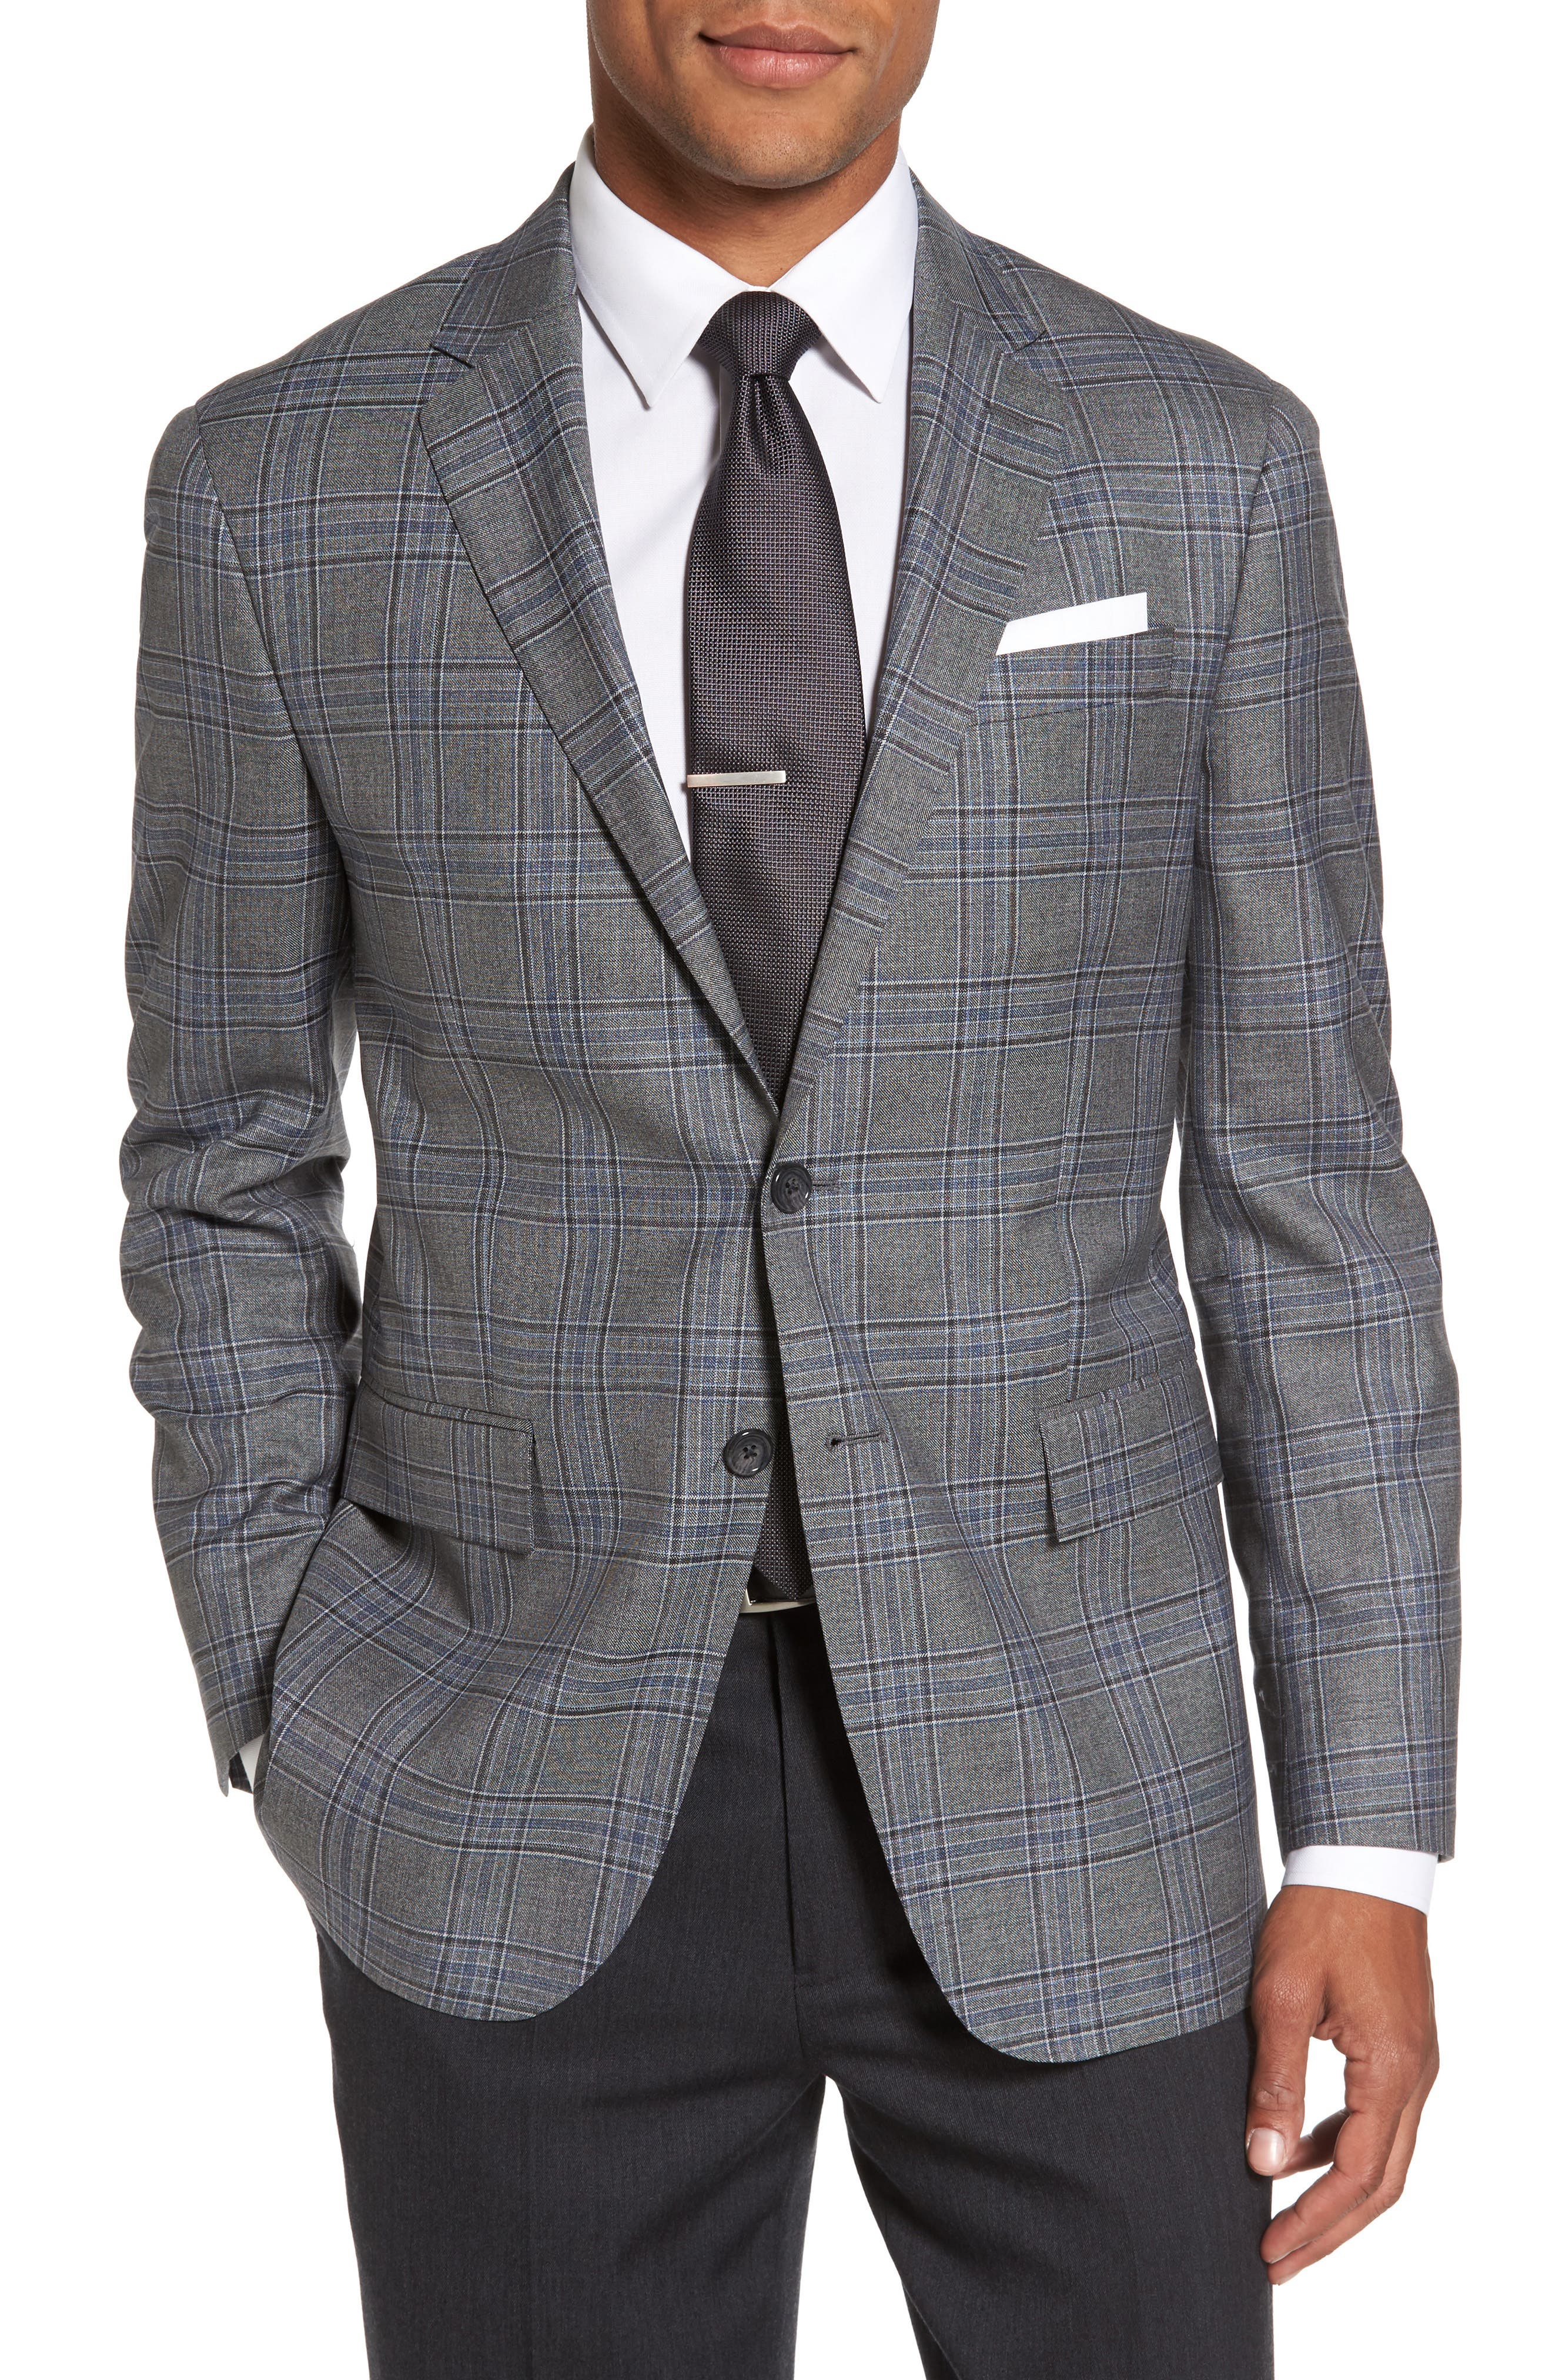 Main Image - Todd Snyder White Label Trim Fit Plaid Wool Sport Coat